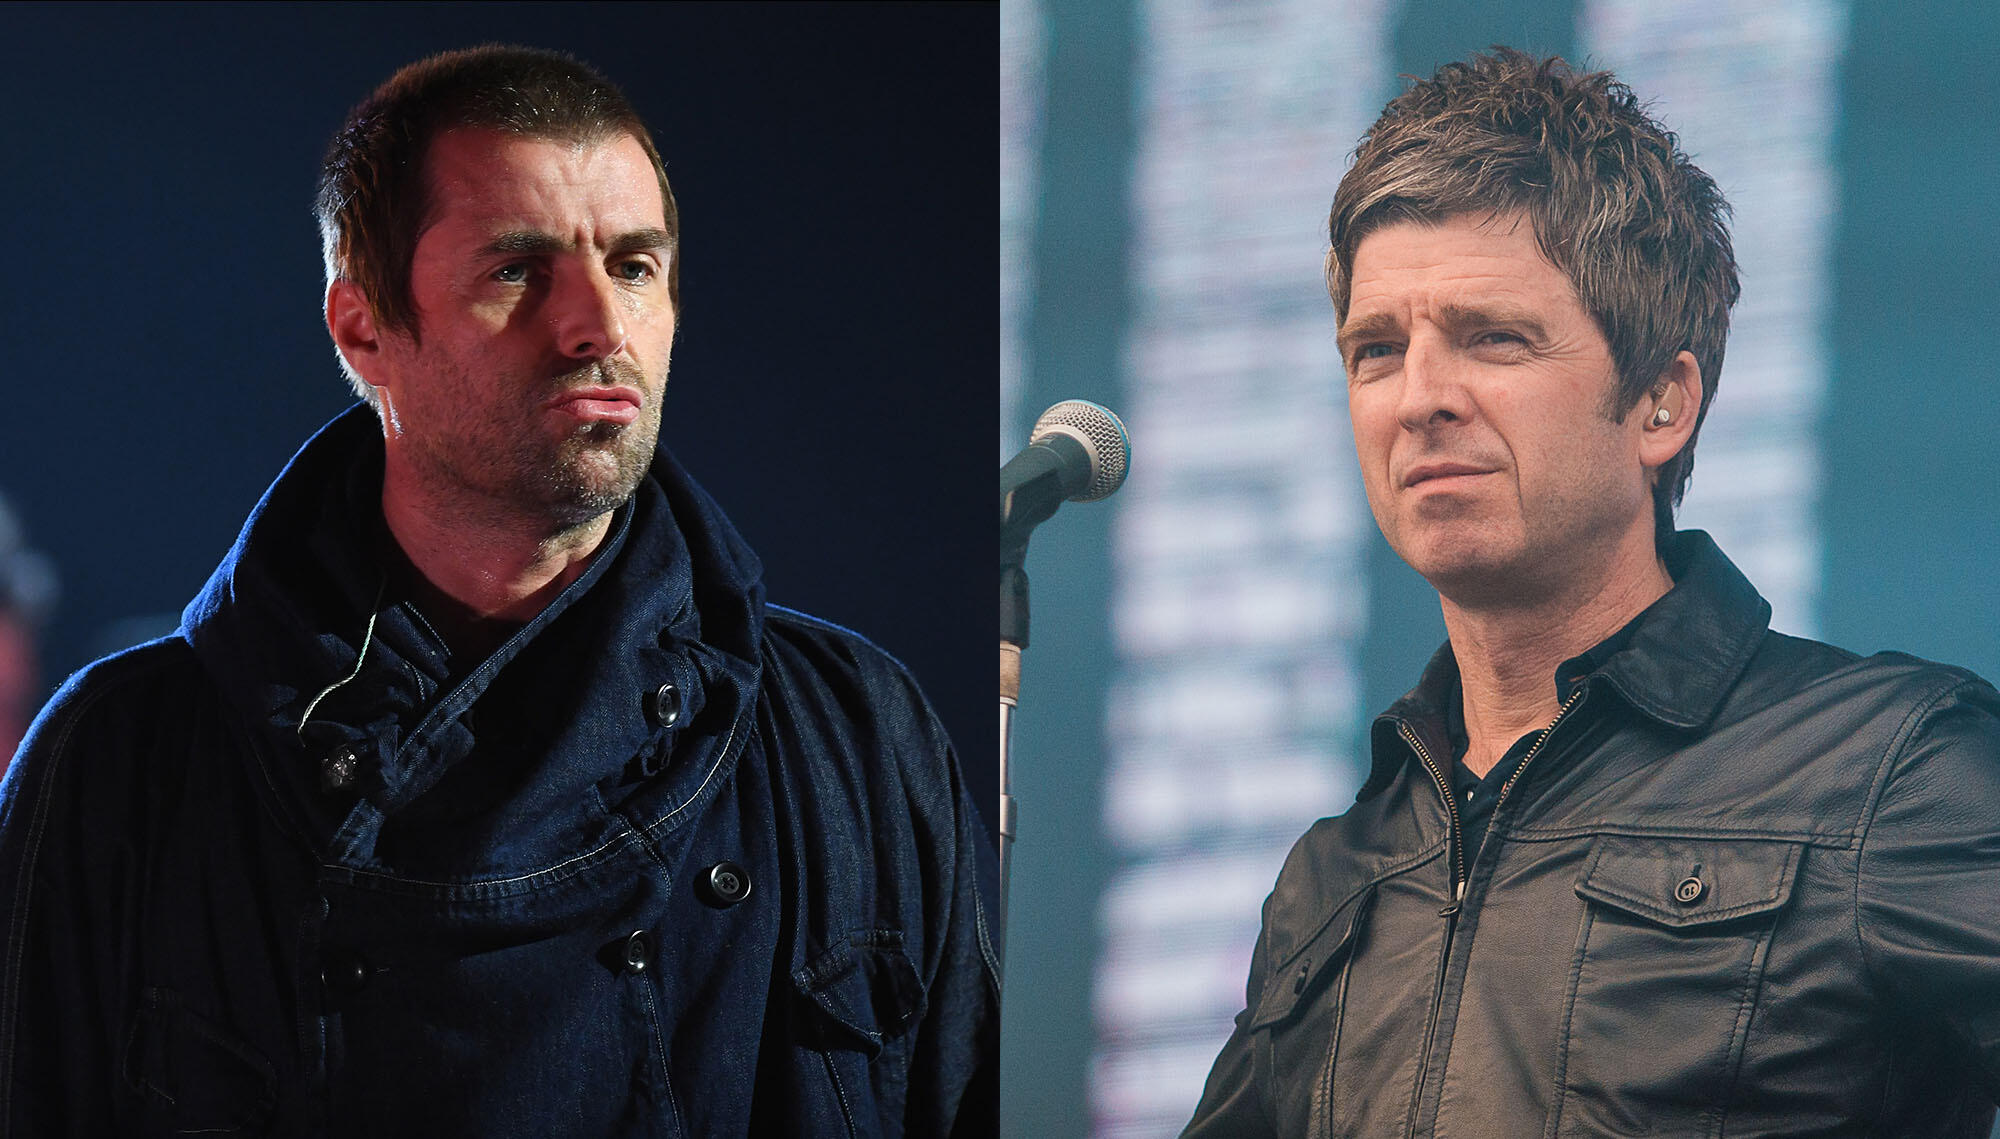 Liam, Noel Gallagher's Joint Venture Suggests Their Latest Feud Is Over